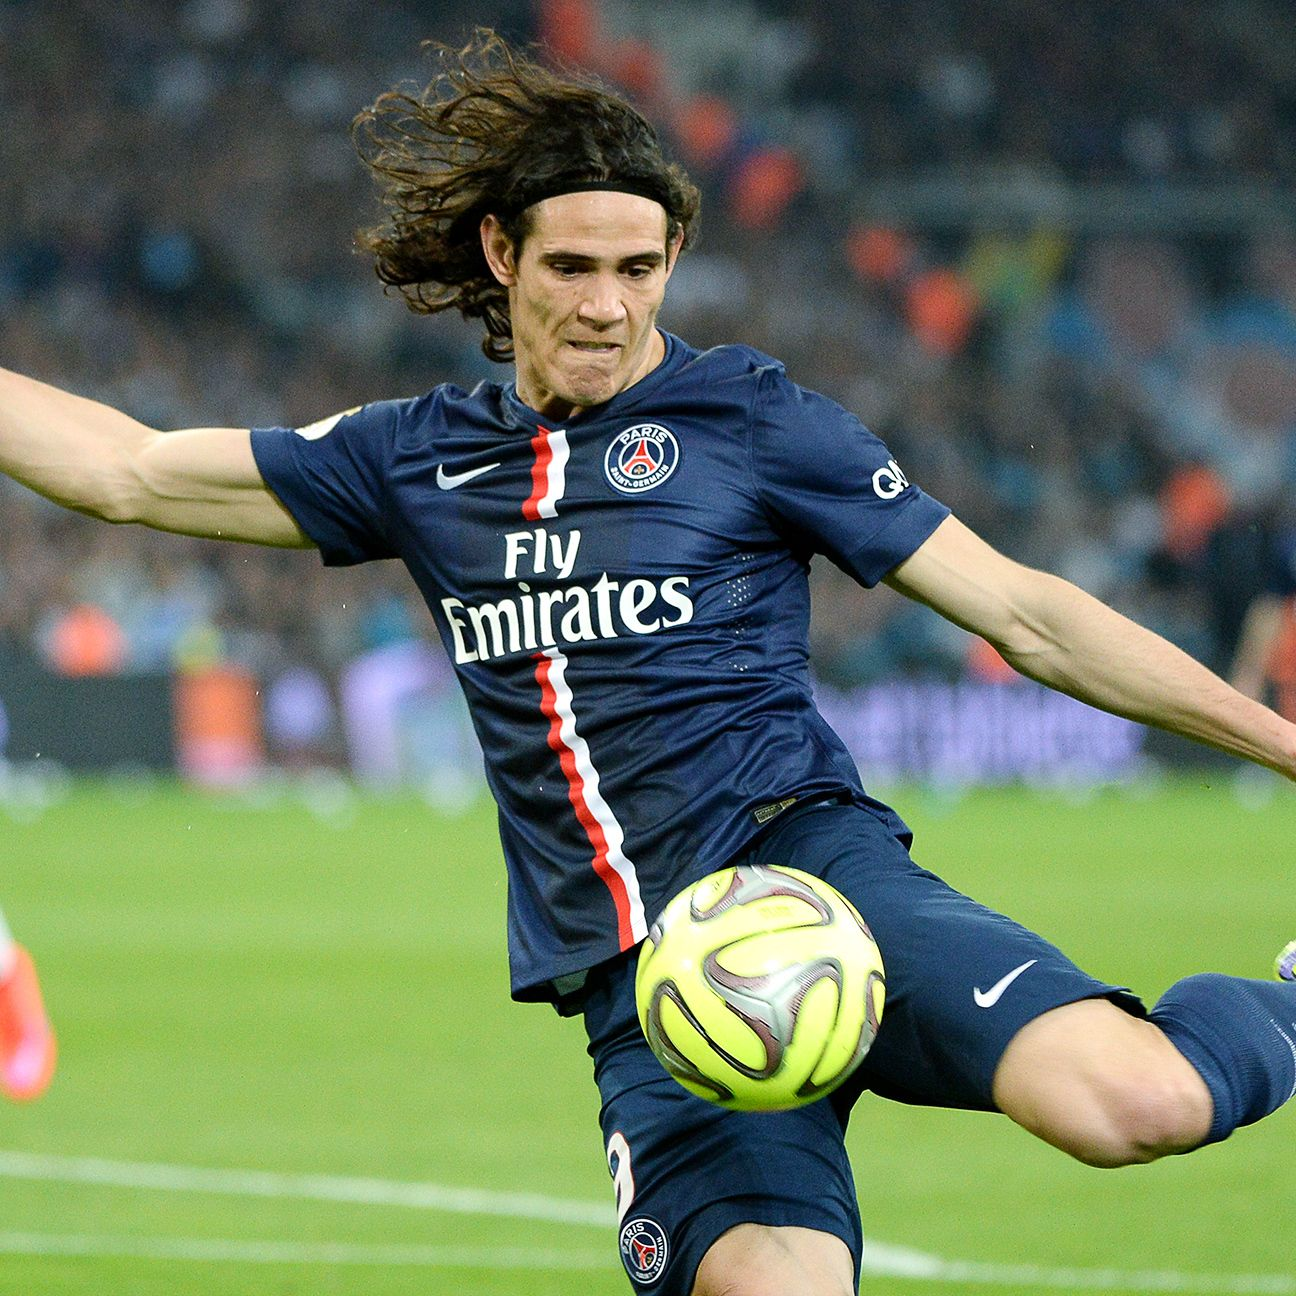 Edinson Cavani will be looking to add to his Ligue 1 season total of 16 goals when PSG face Montpellier.